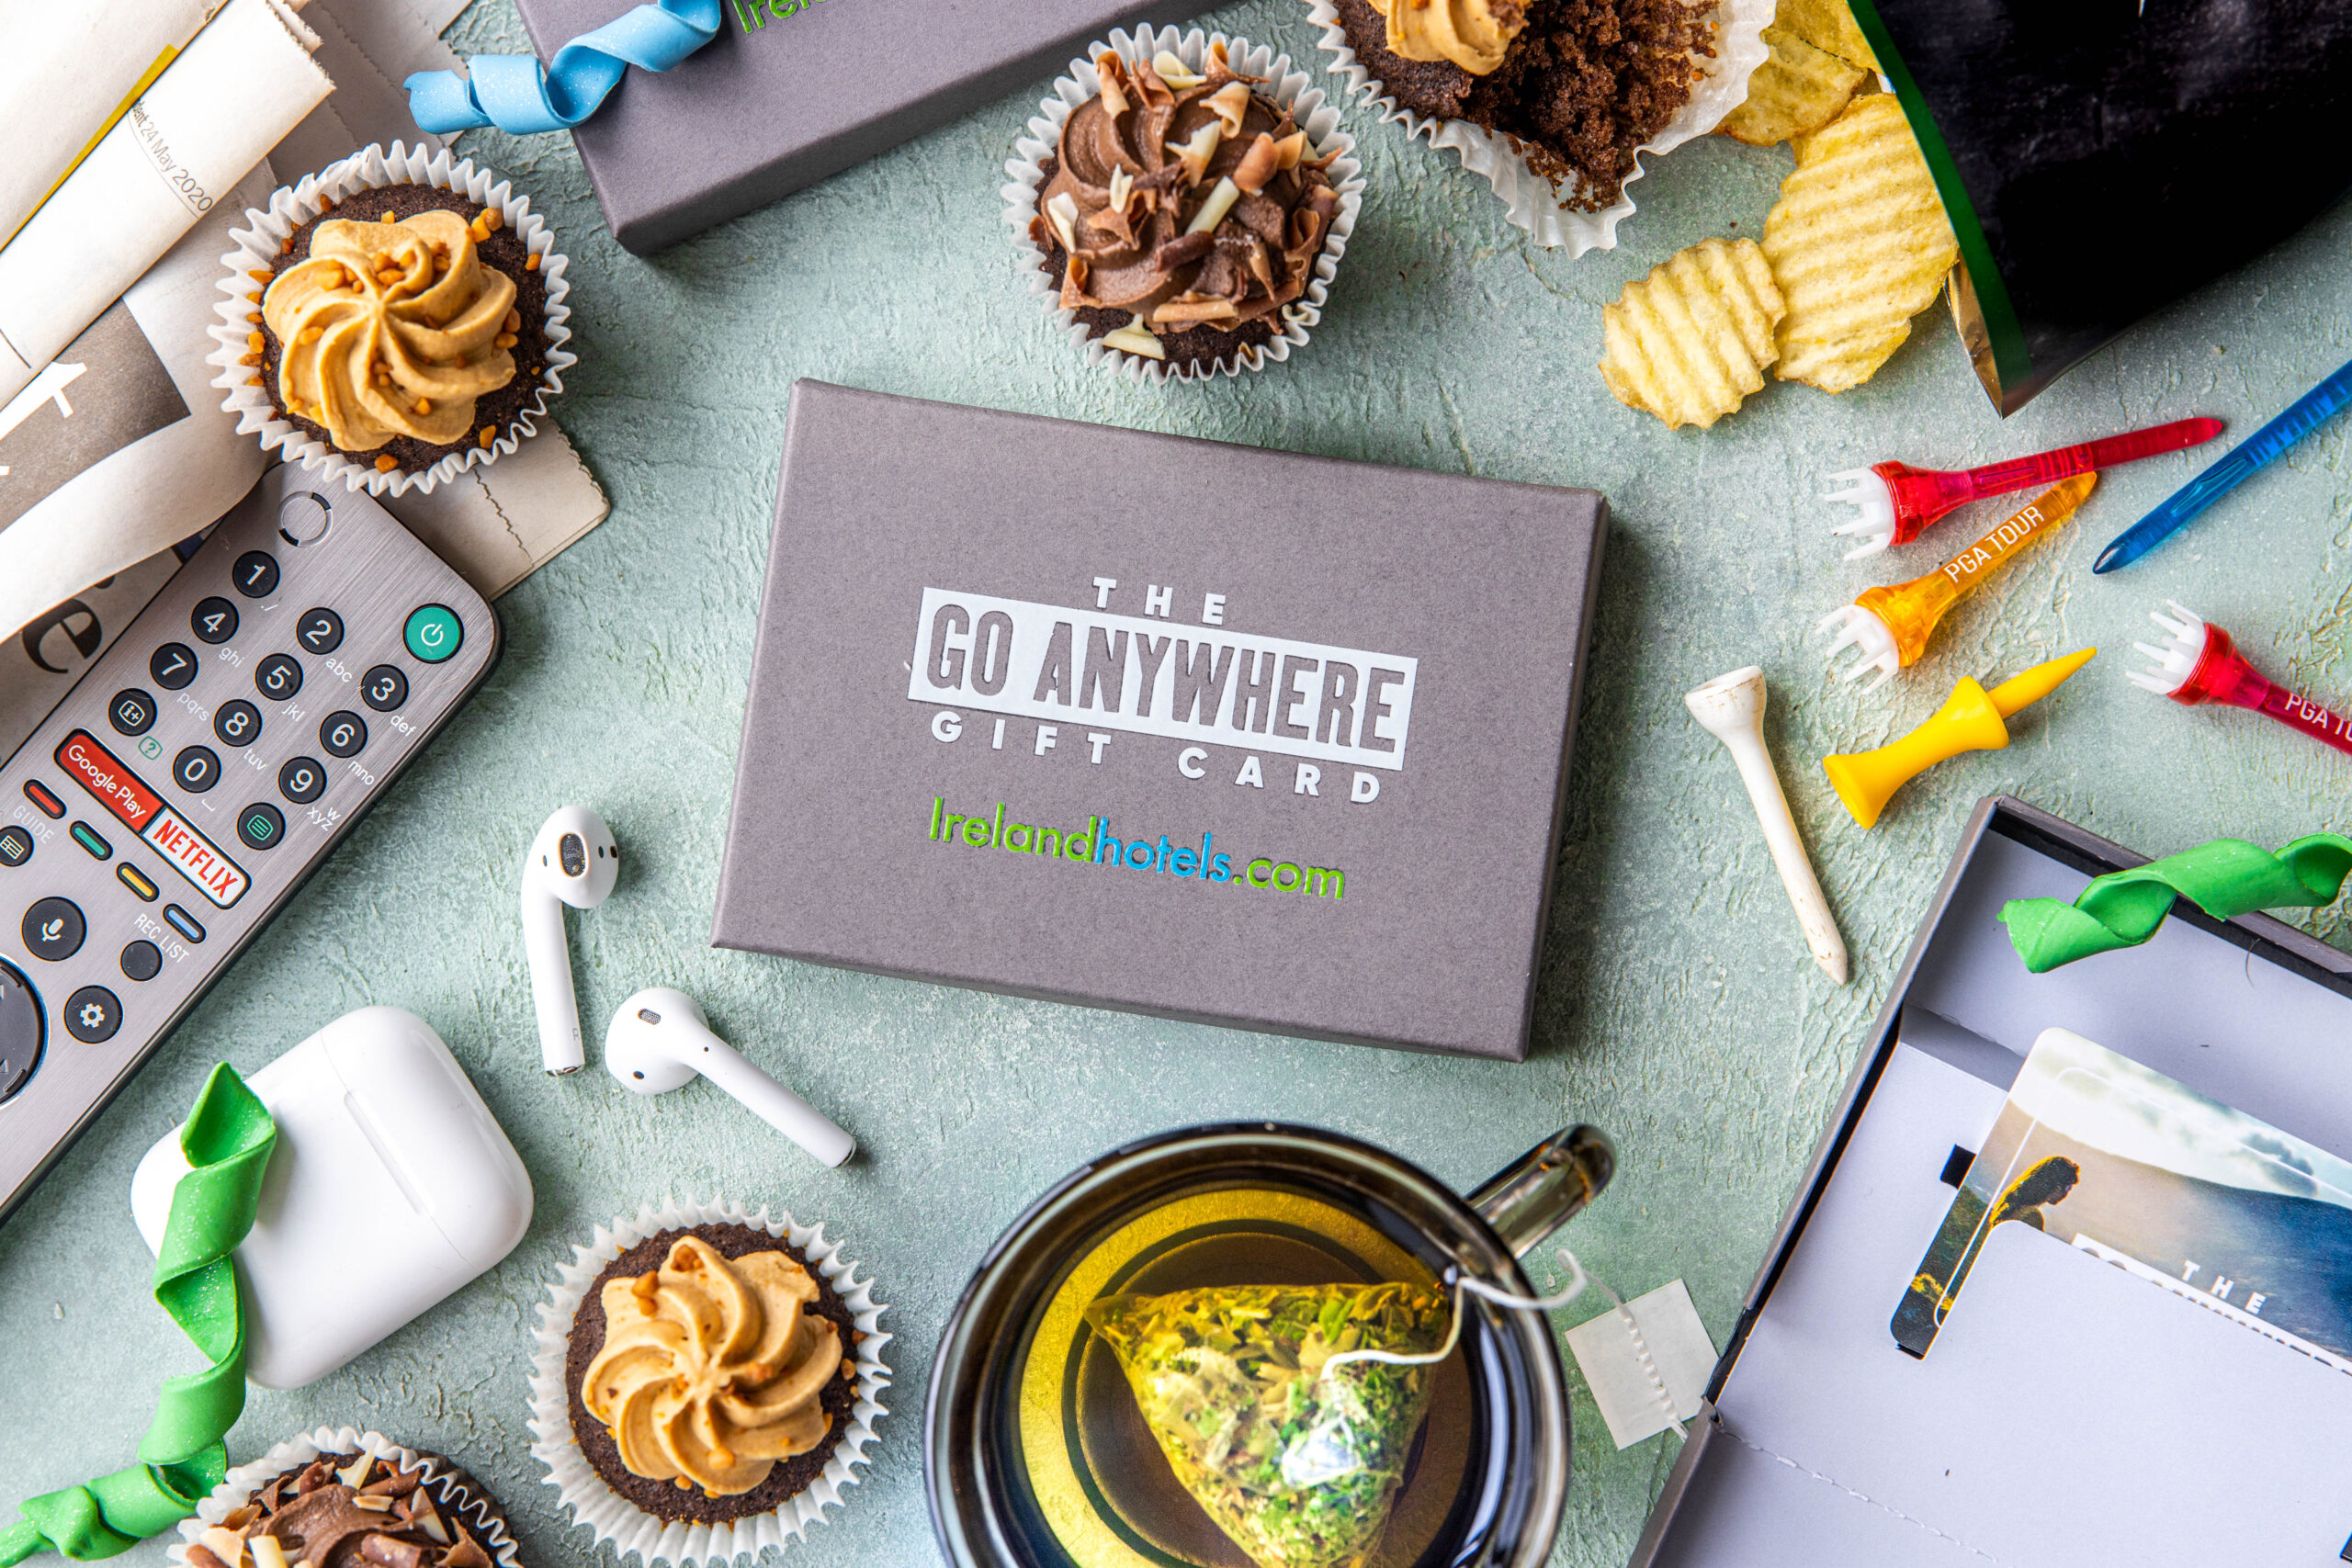 Give the gift of freedom this Father's Day with the 'Go Anywhere Gift Card' from Irelandhotels.com